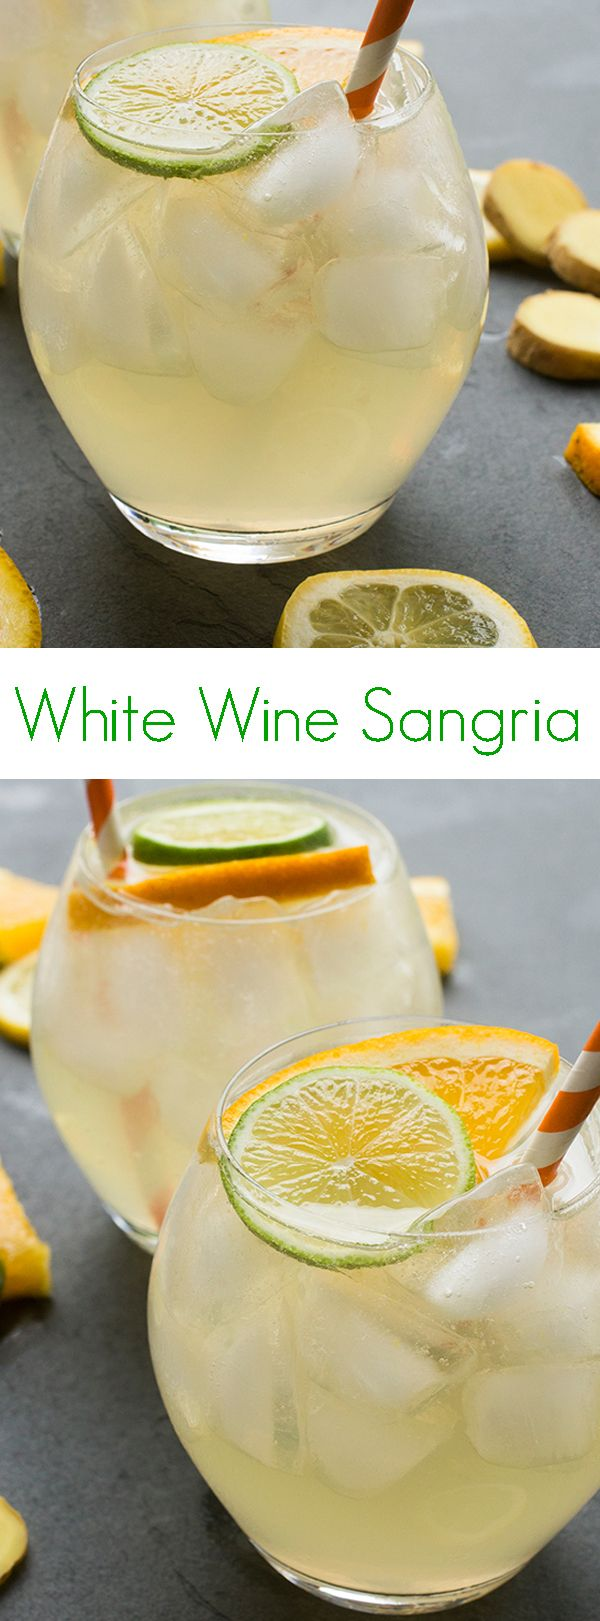 This sparkling white wine sangria is made with ginger beer and three types of citrus juice. This recipe is ideal for entertaining a crowd!